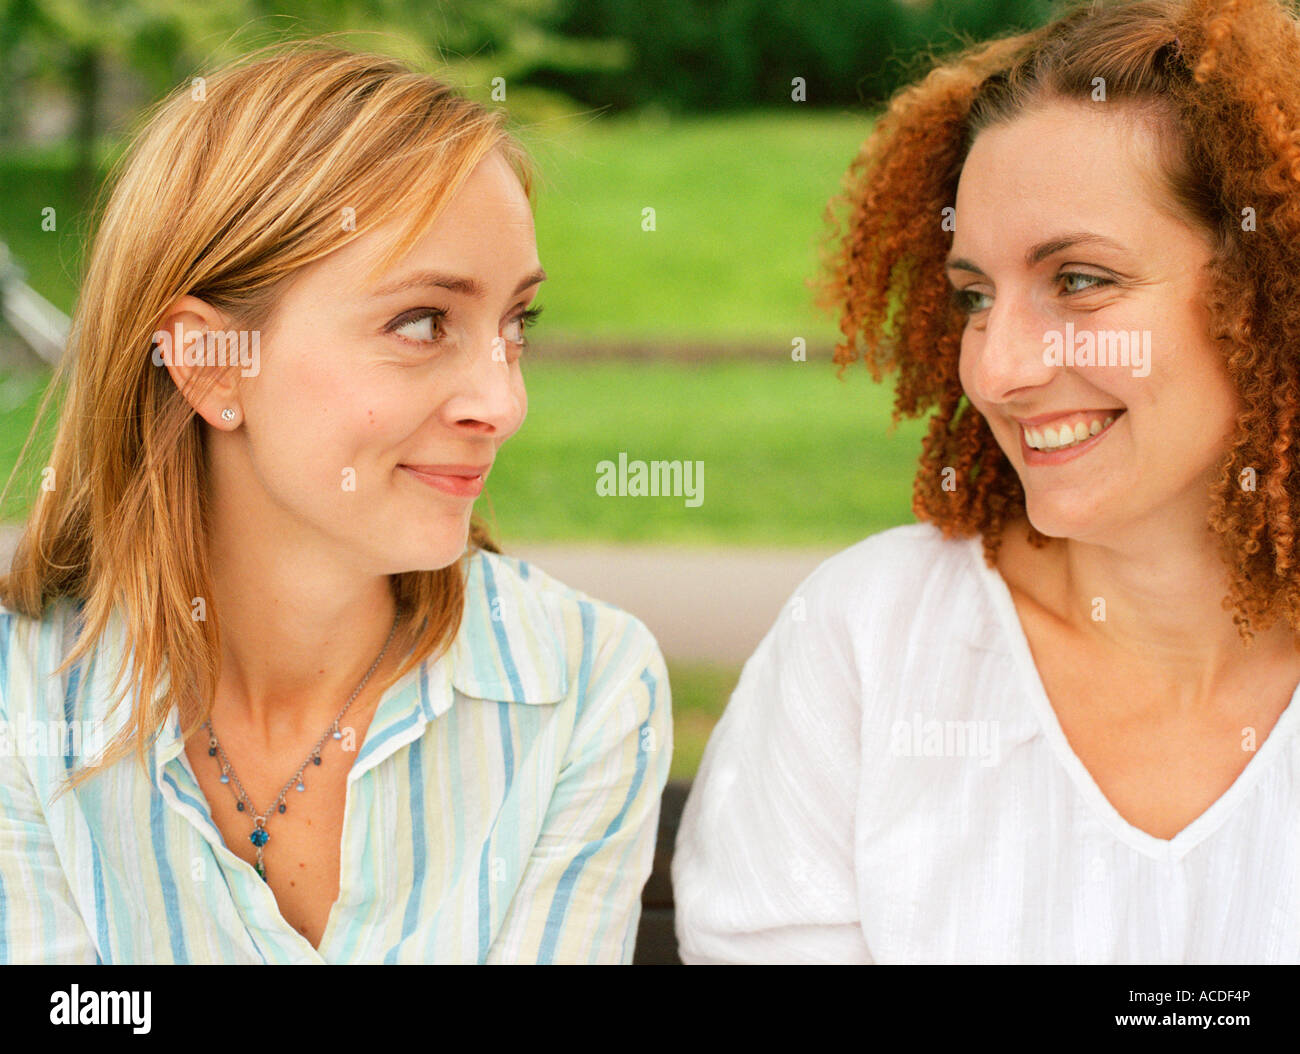 Two smiling women sitting outdoors and looking into each others eyes. - Stock Image